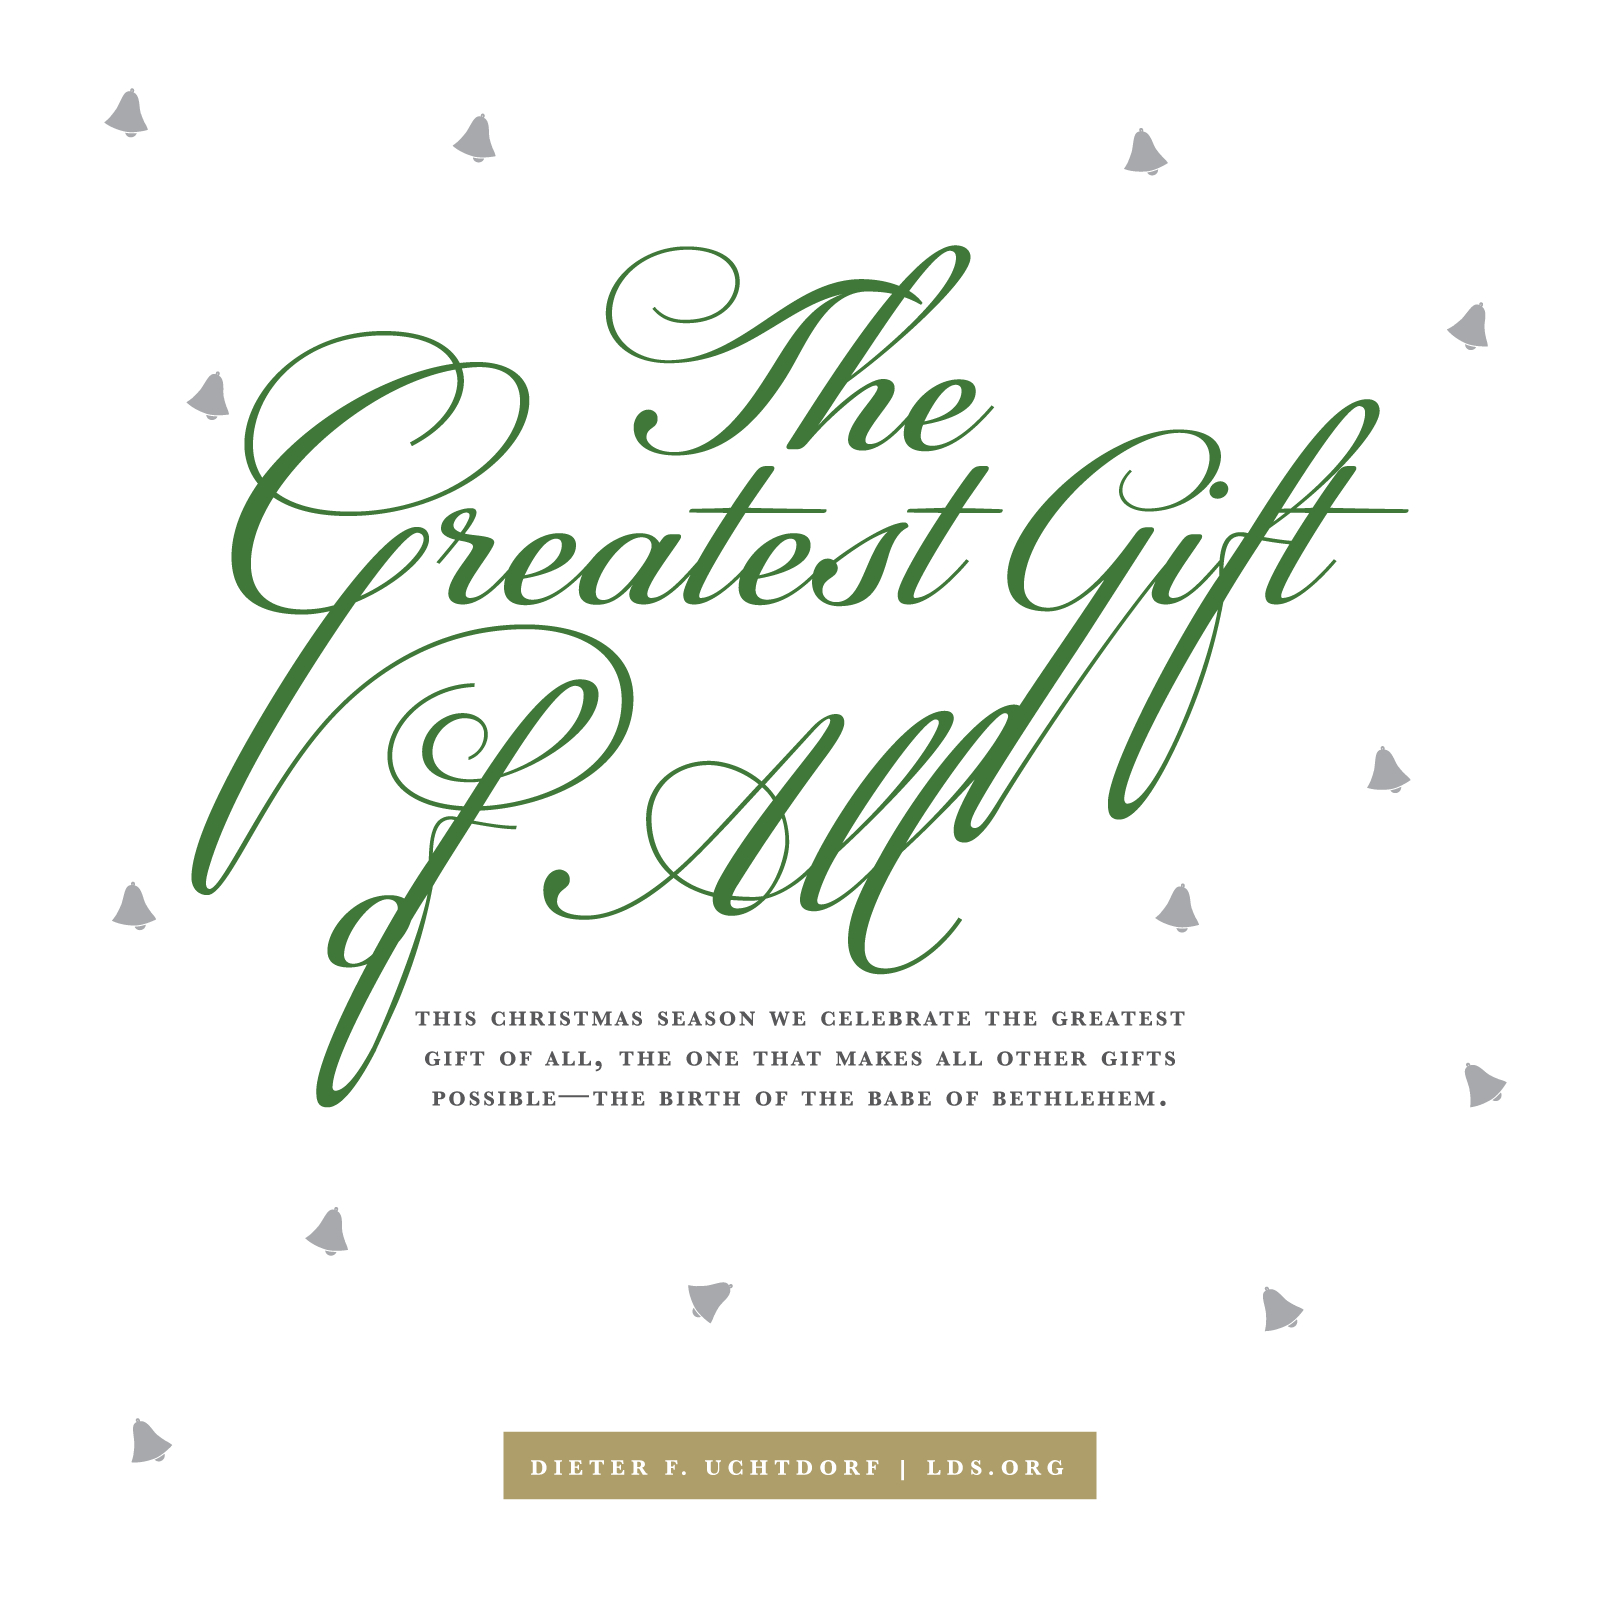 109 Best Christmas Lds Images On Pinterest: The Greatest Gift Of All